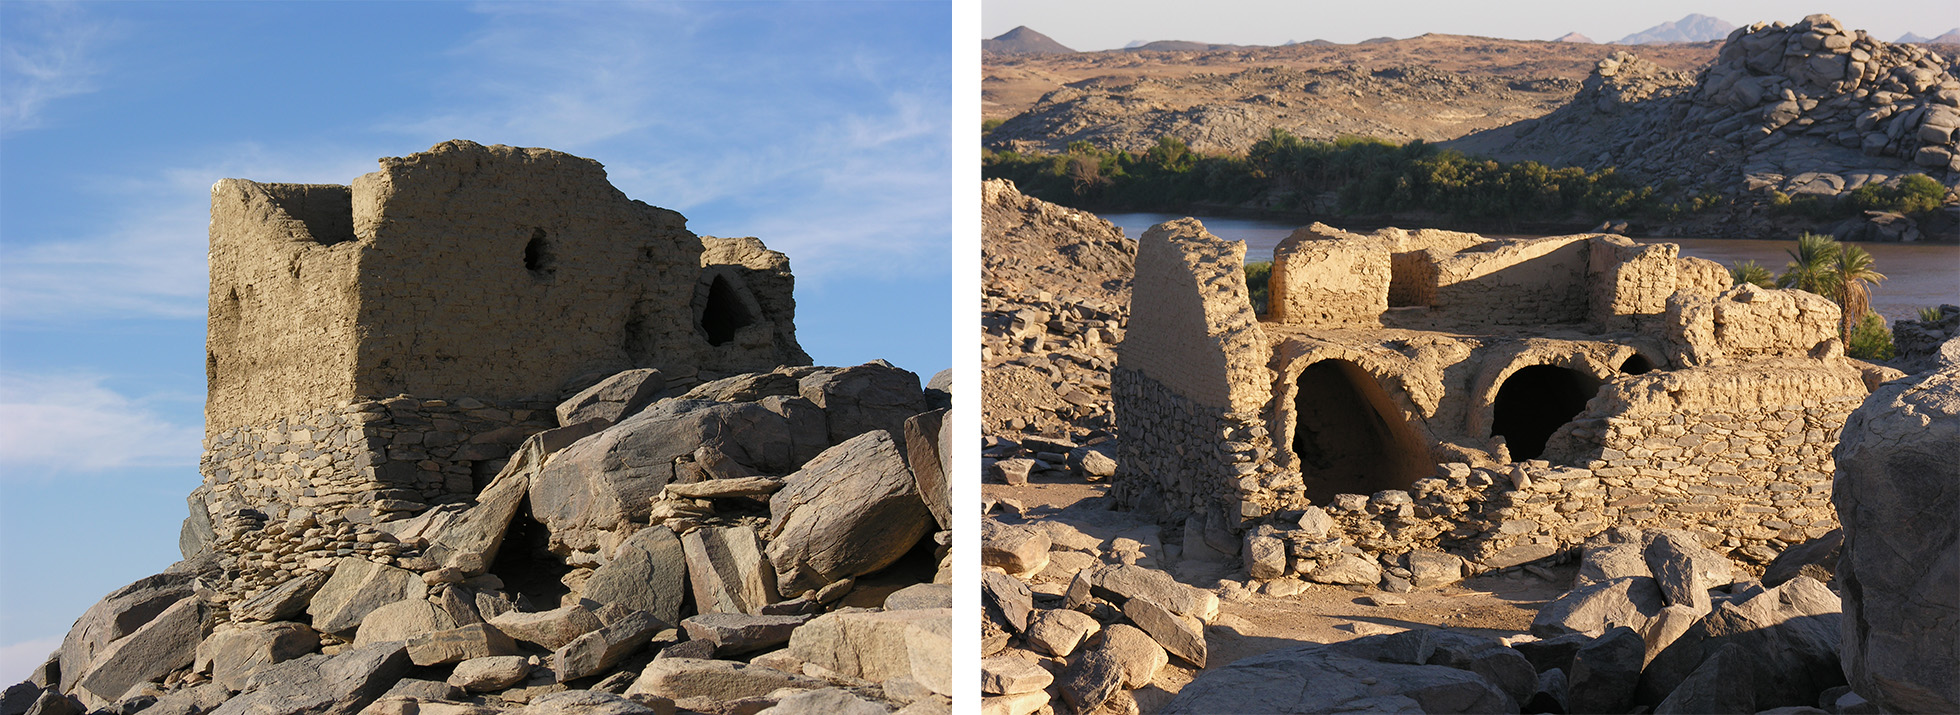 Two photographs of the ruins of houses made from mud brick and stone. The photograph on the right shows a one-story house, the left shows a two-storey house.